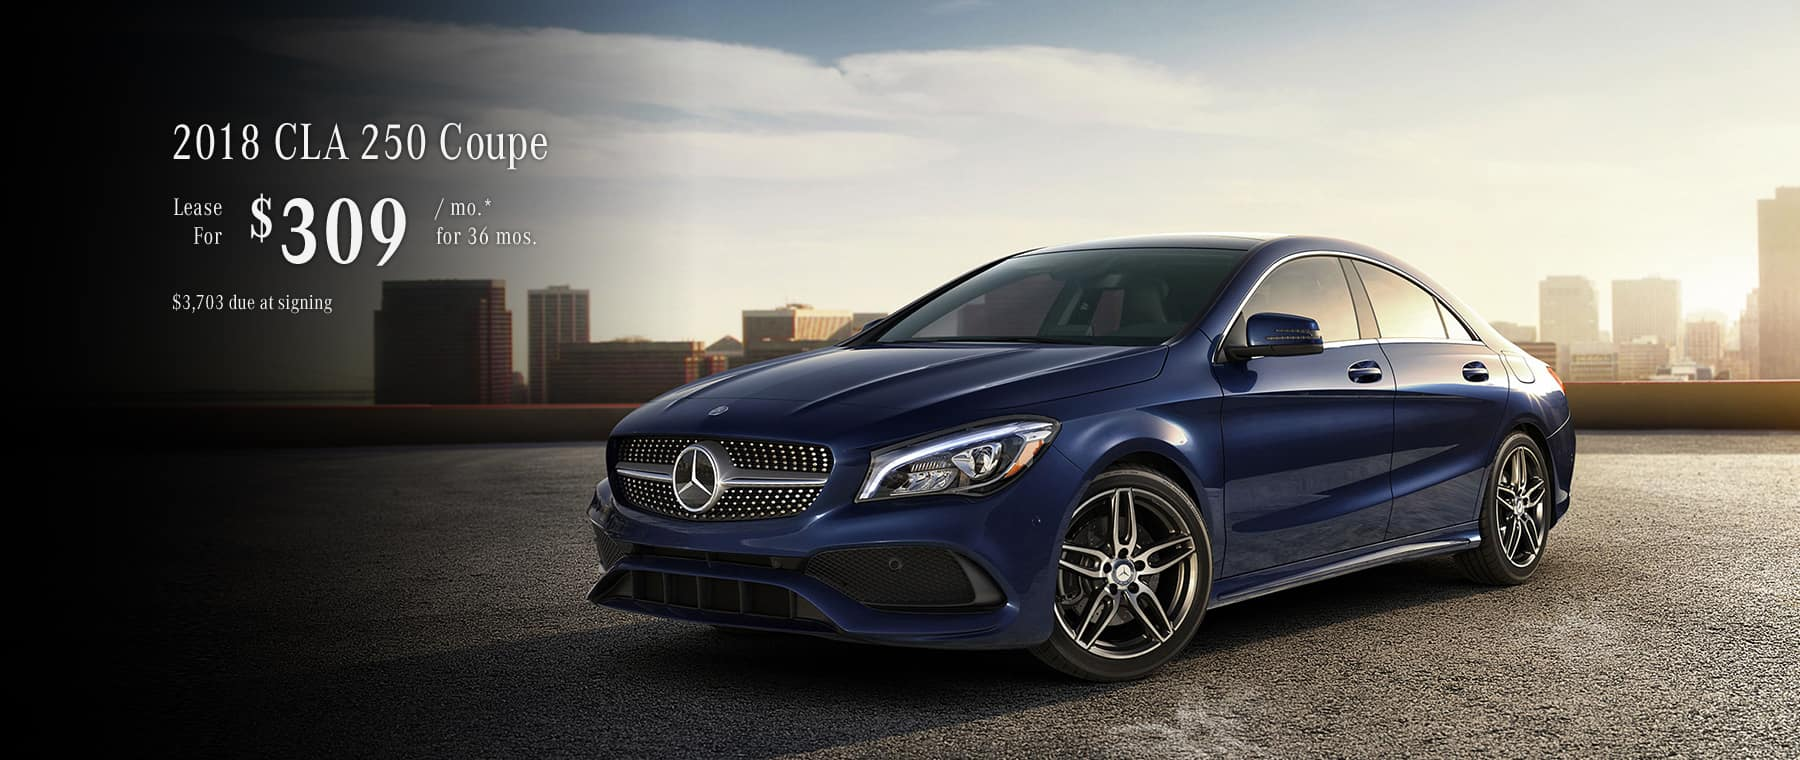 Mercedes-Benz of Chandler New 2018 Mercedes-Benz CLA 250 Coupe